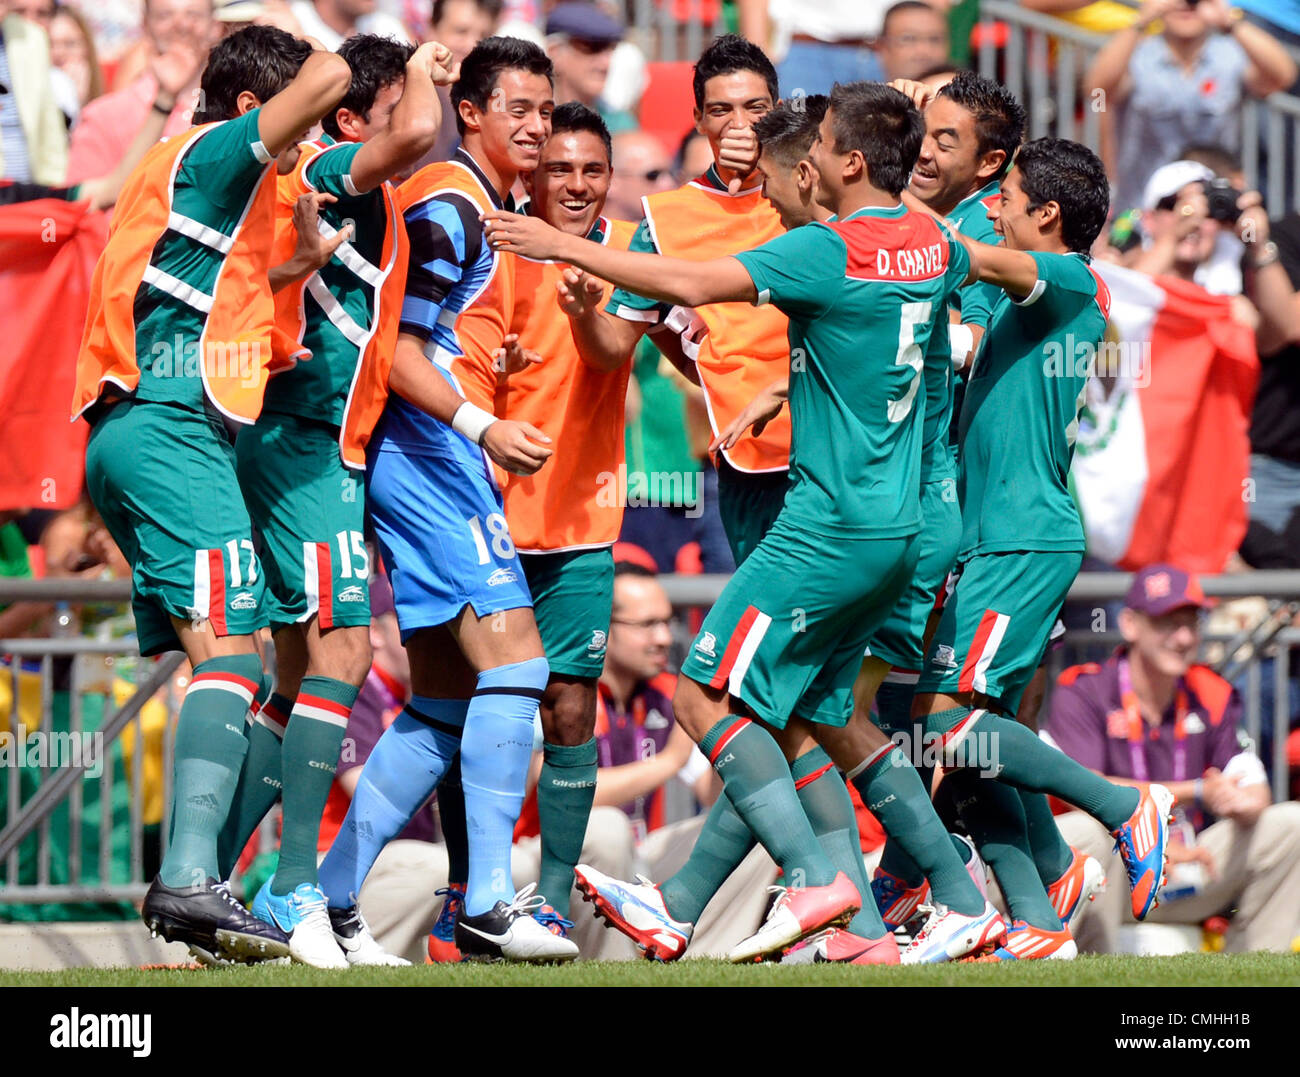 11th Aug 2012. 11.08.2012. Wembley Stadium, London, England.  Team members of Mexico celebrate the first goal for - Stock Image